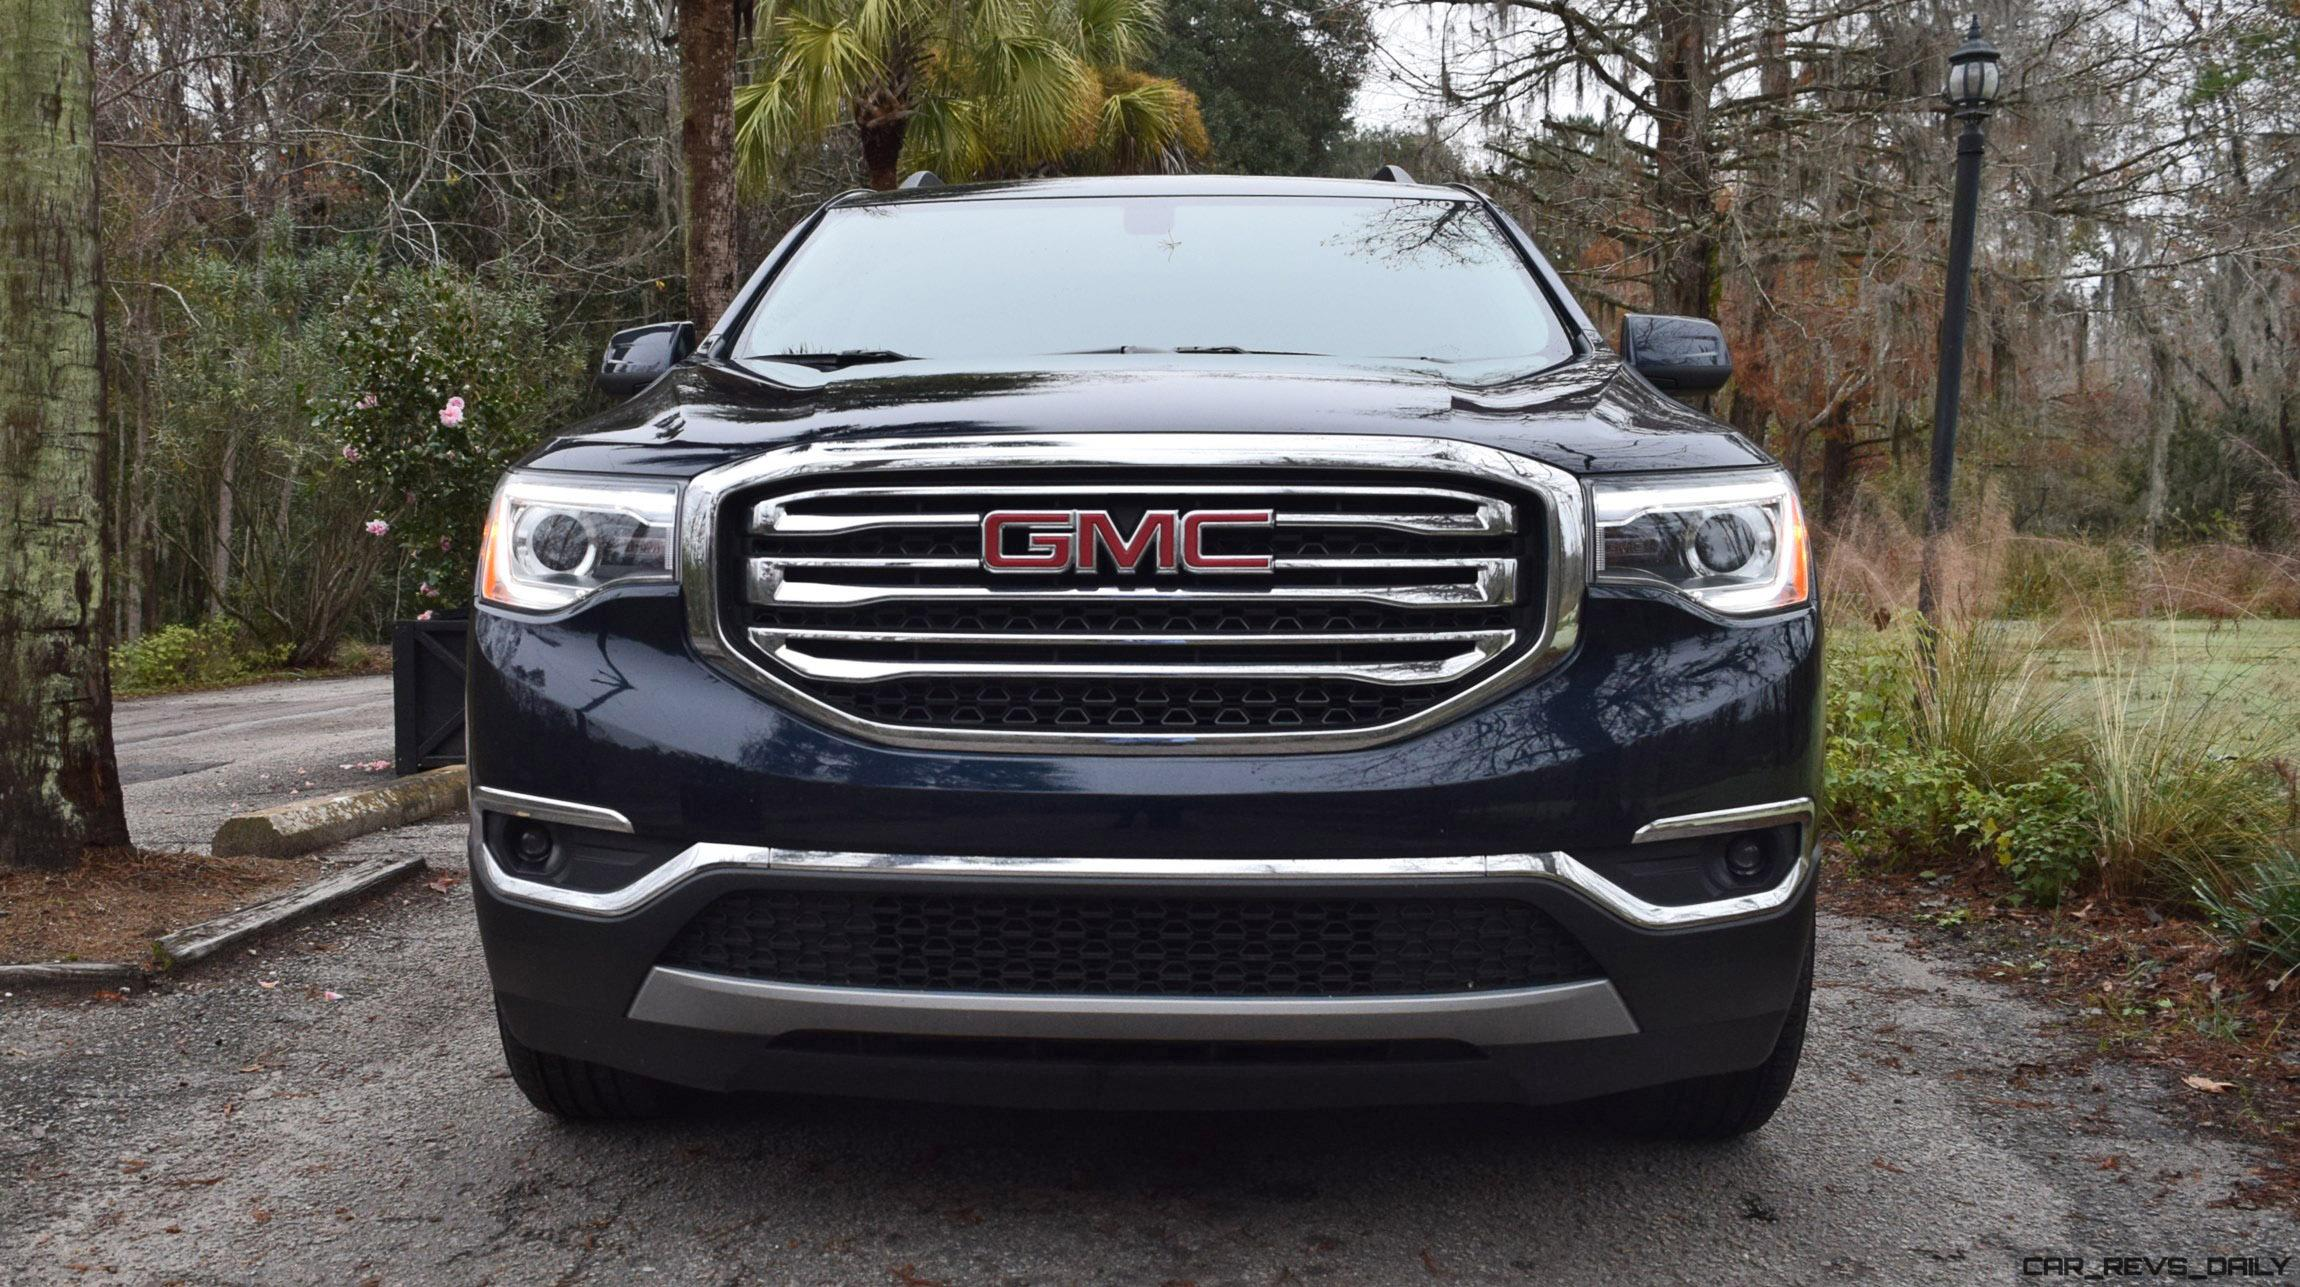 2017 gmc acadia slt 1 fwd hd road test review car revs. Black Bedroom Furniture Sets. Home Design Ideas